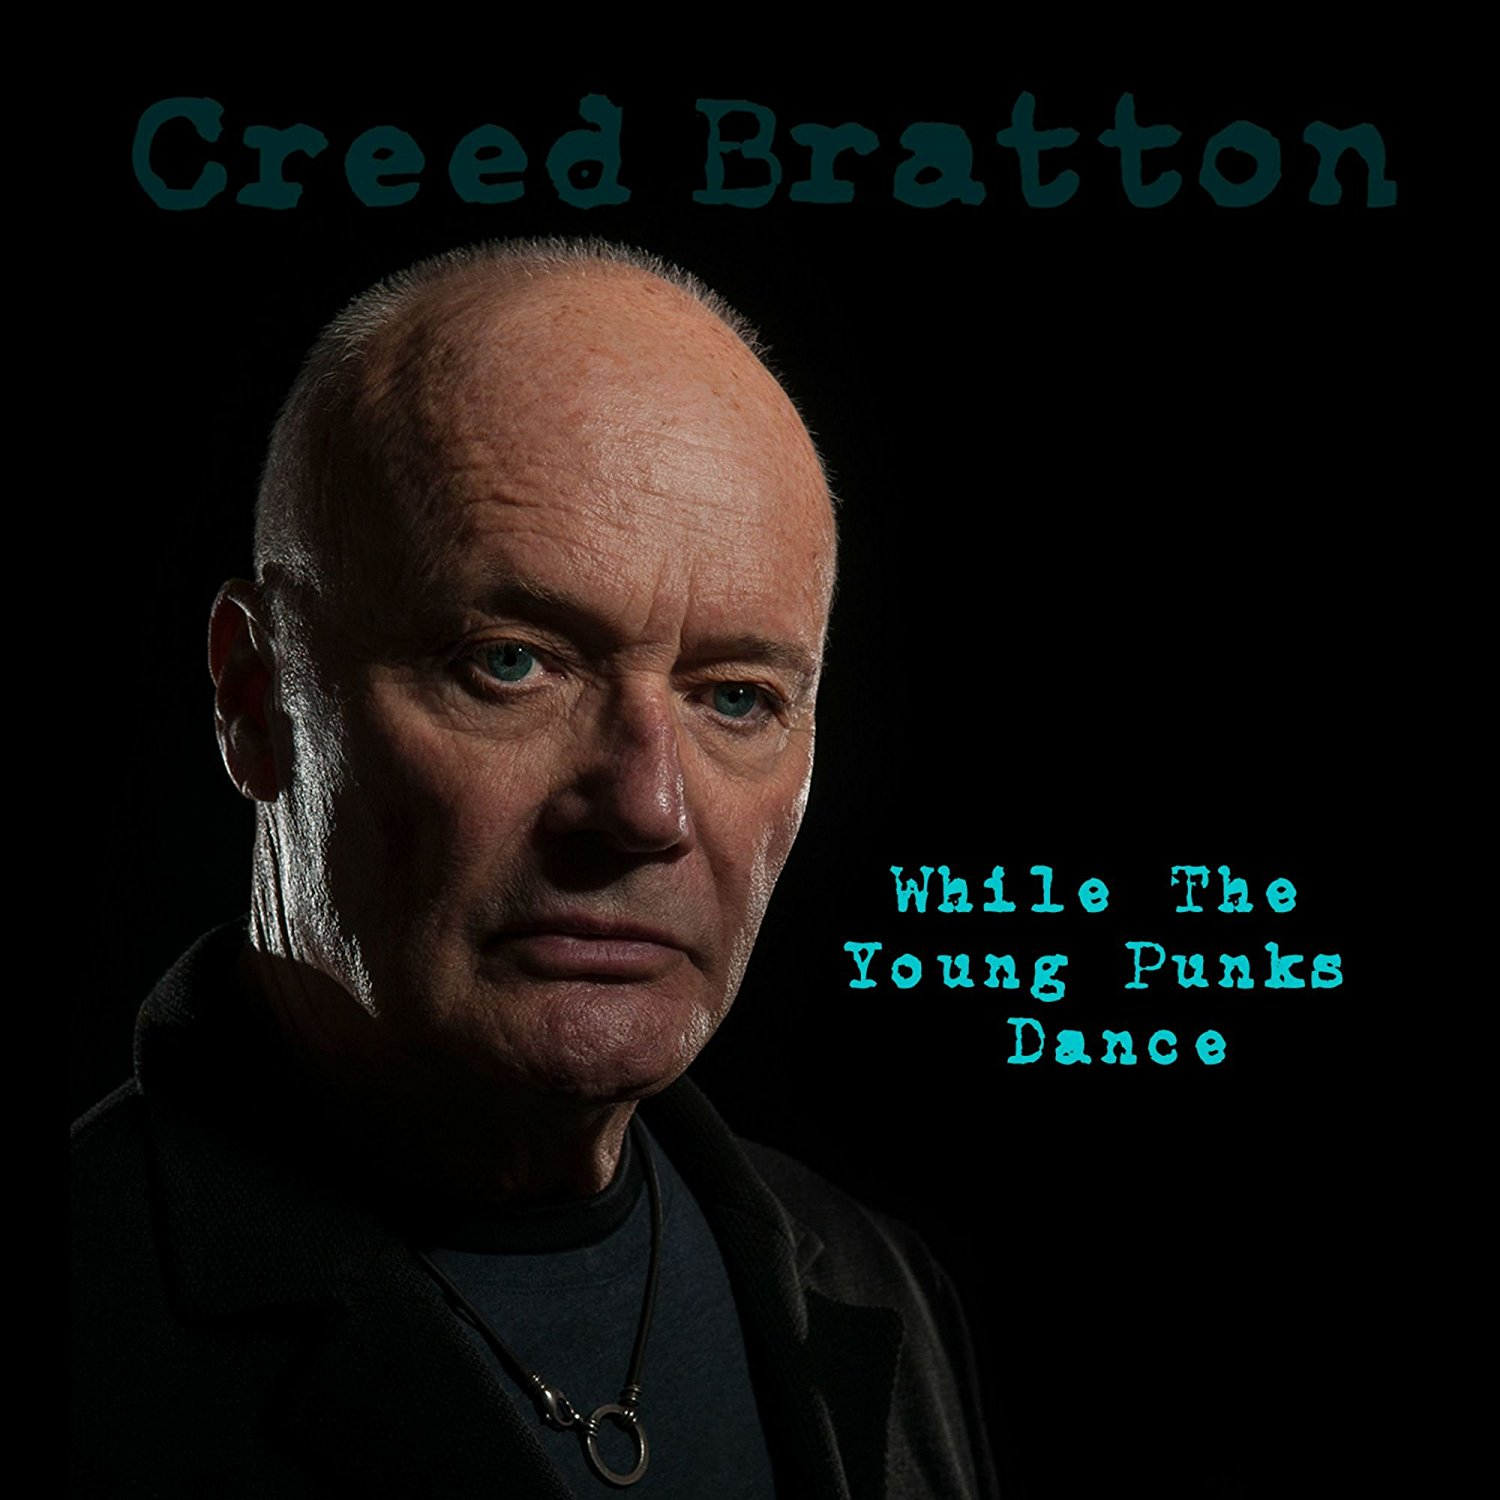 Creed Bratton - While the Young Punks Dance